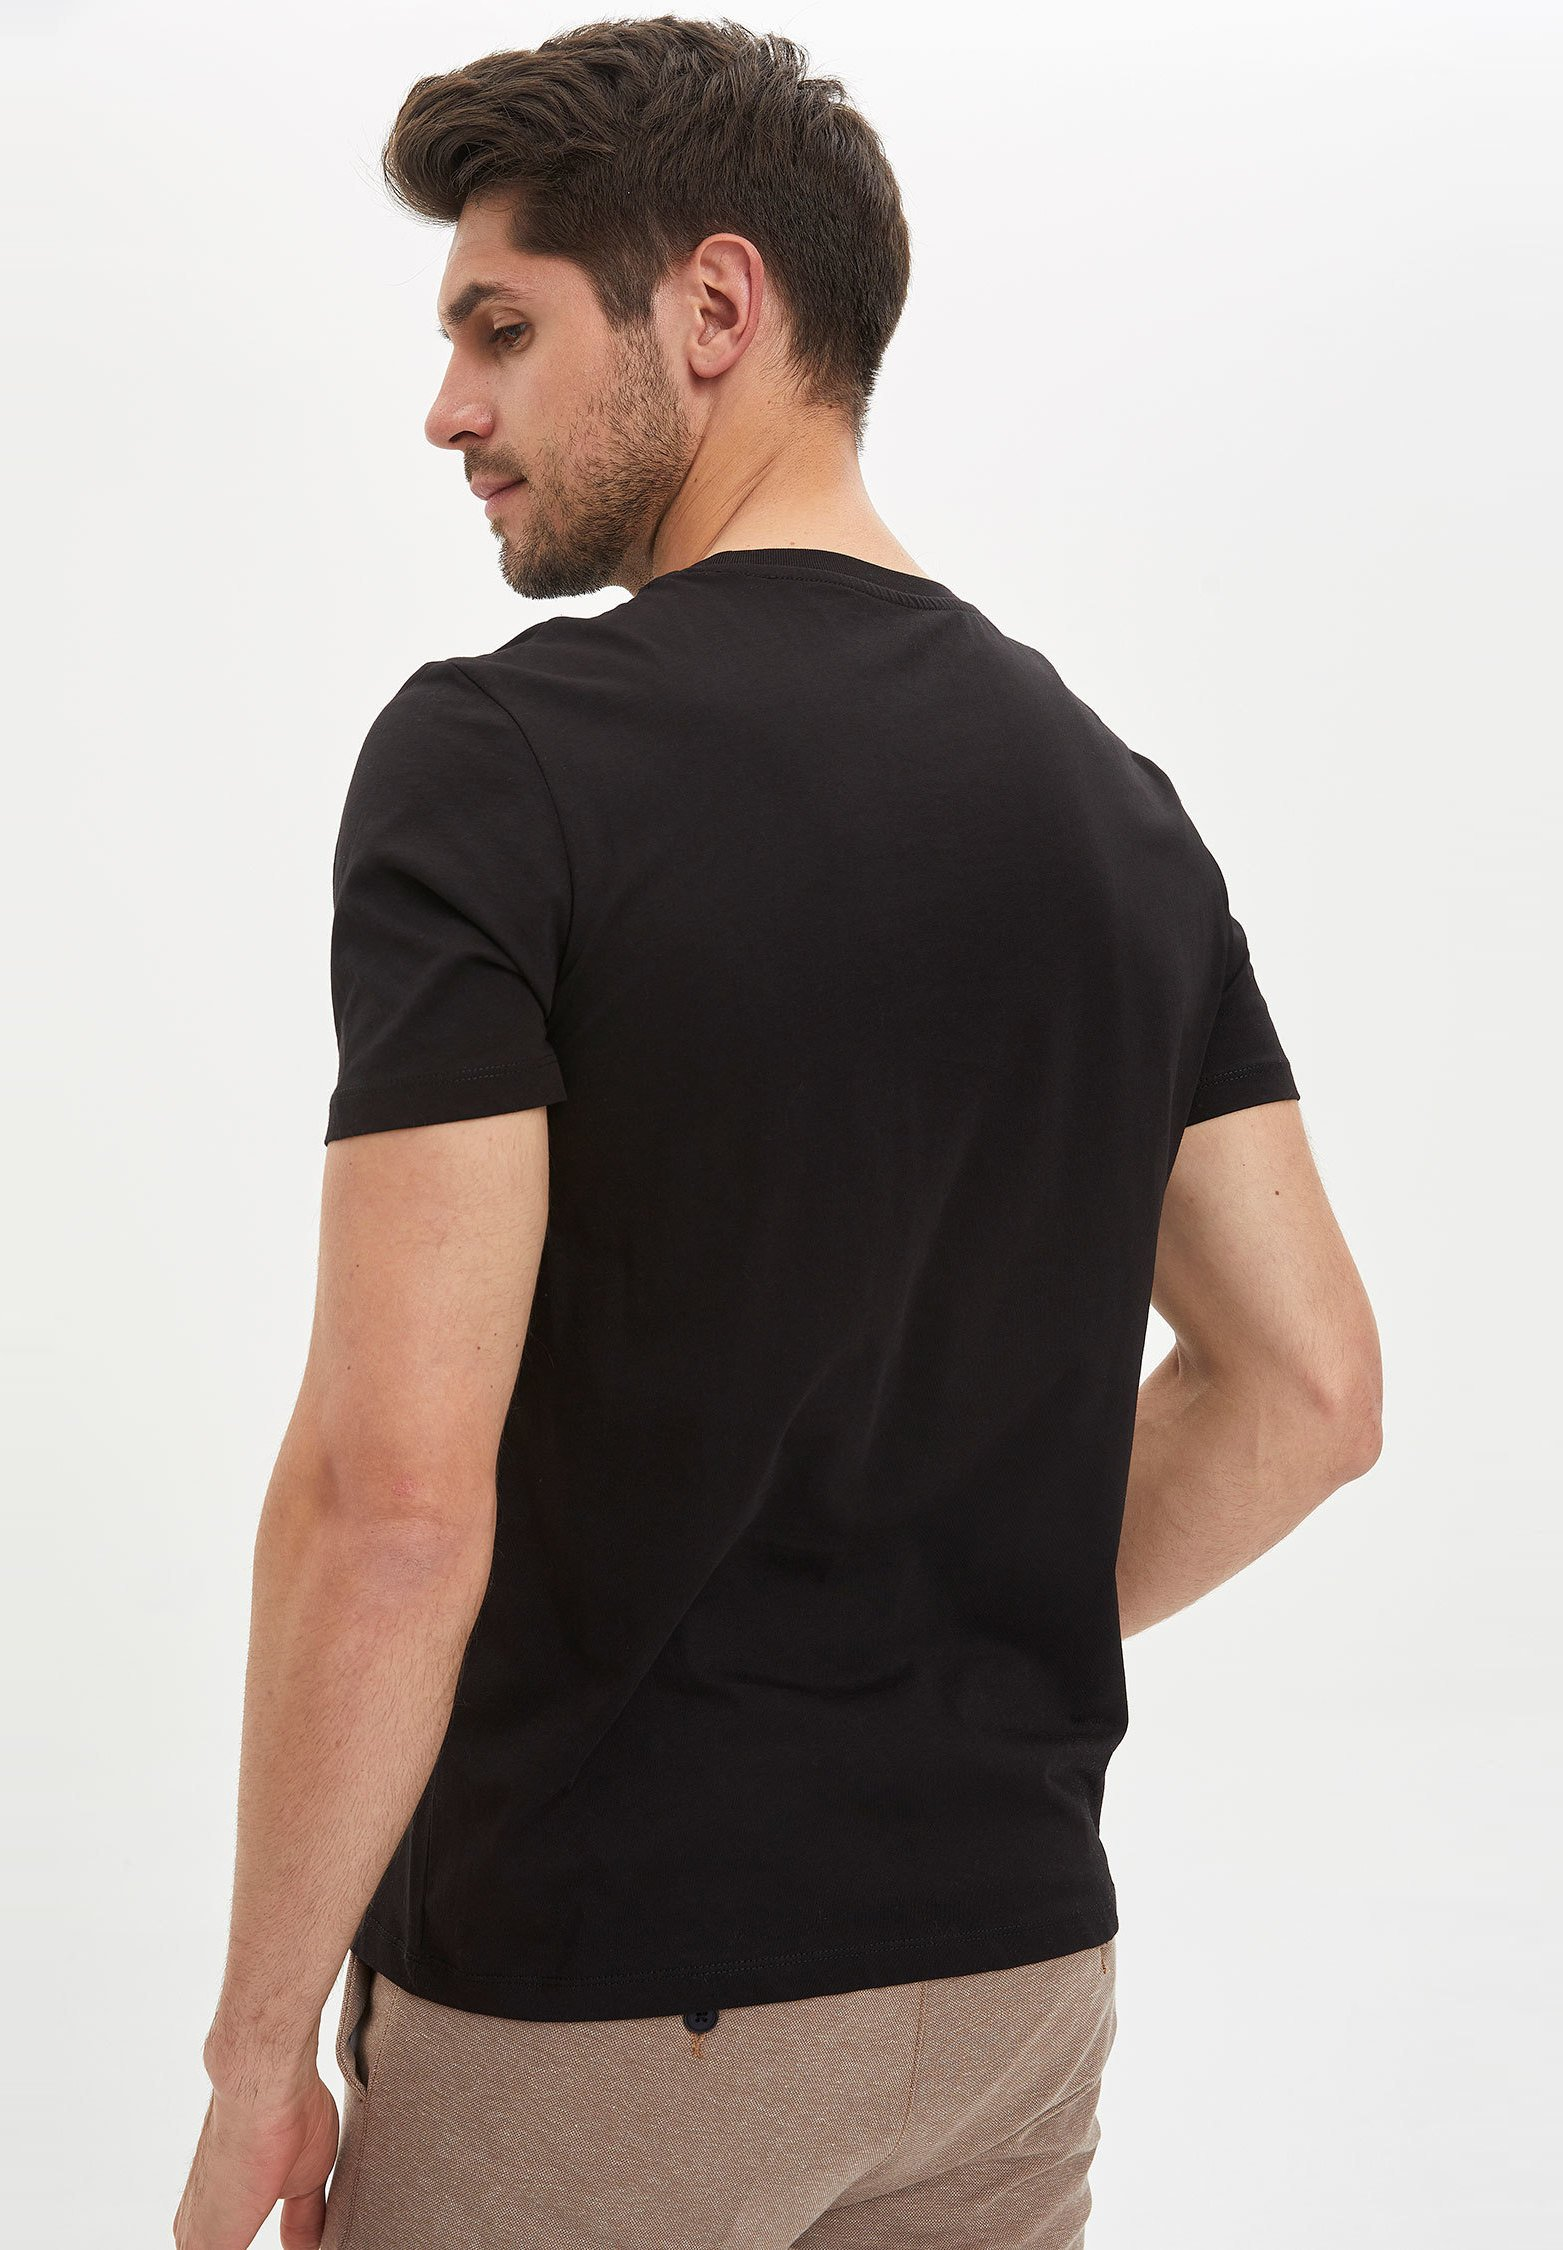 DeFacto Basic T-shirt - black nDpEr